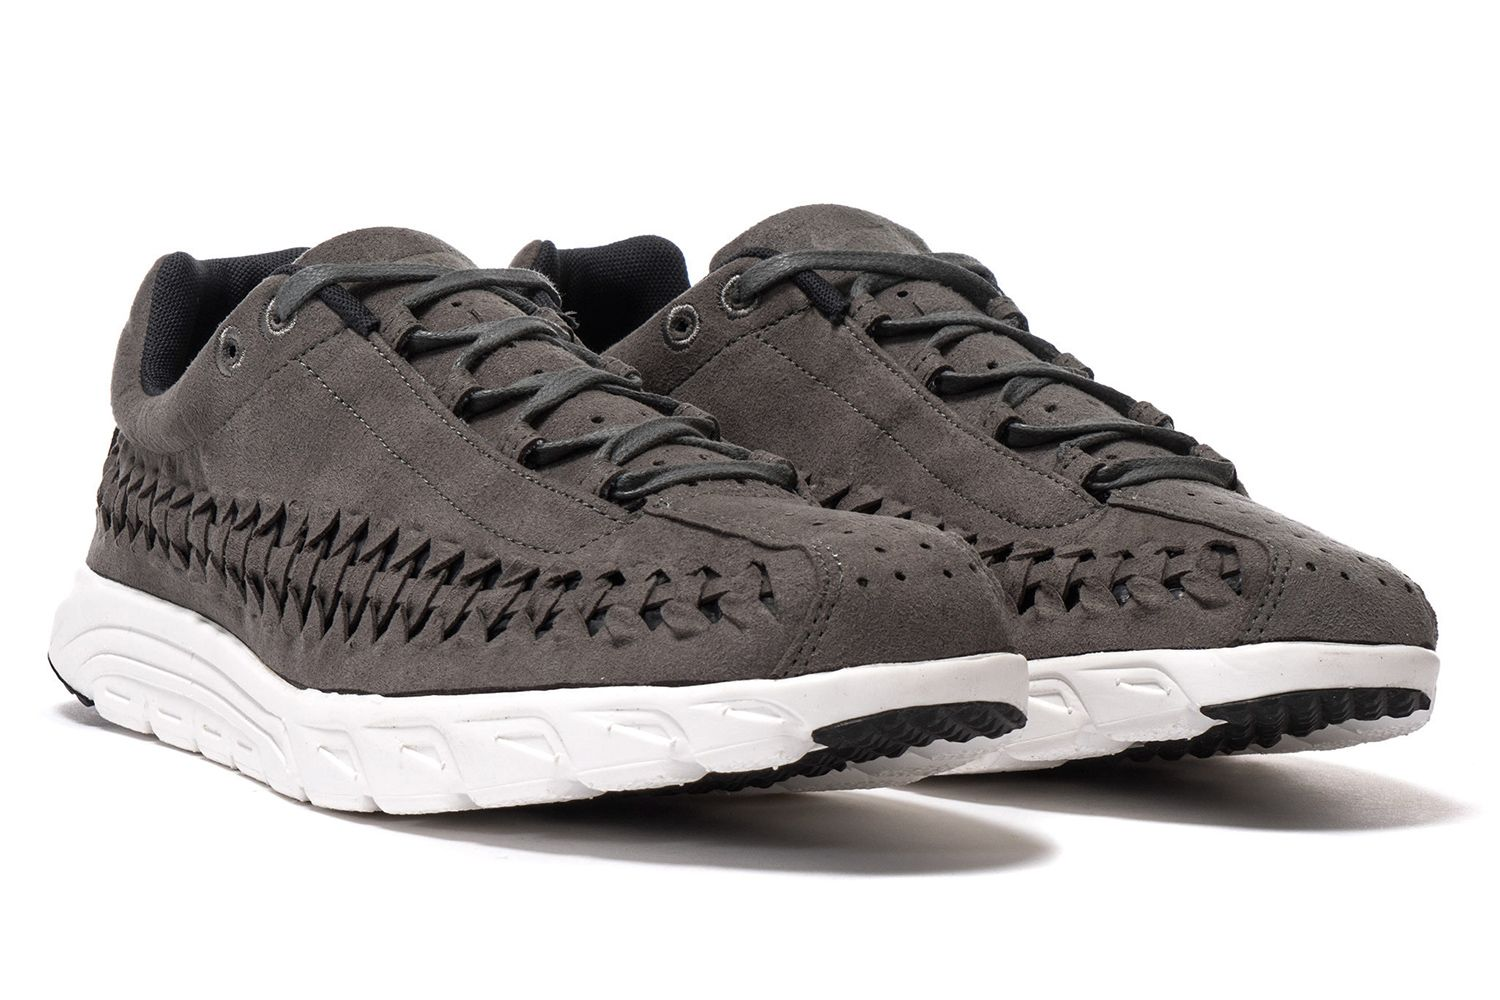 b52acefd1eea1 The return of the Nike Mayfly Woven has sparked a major ovation. As expected